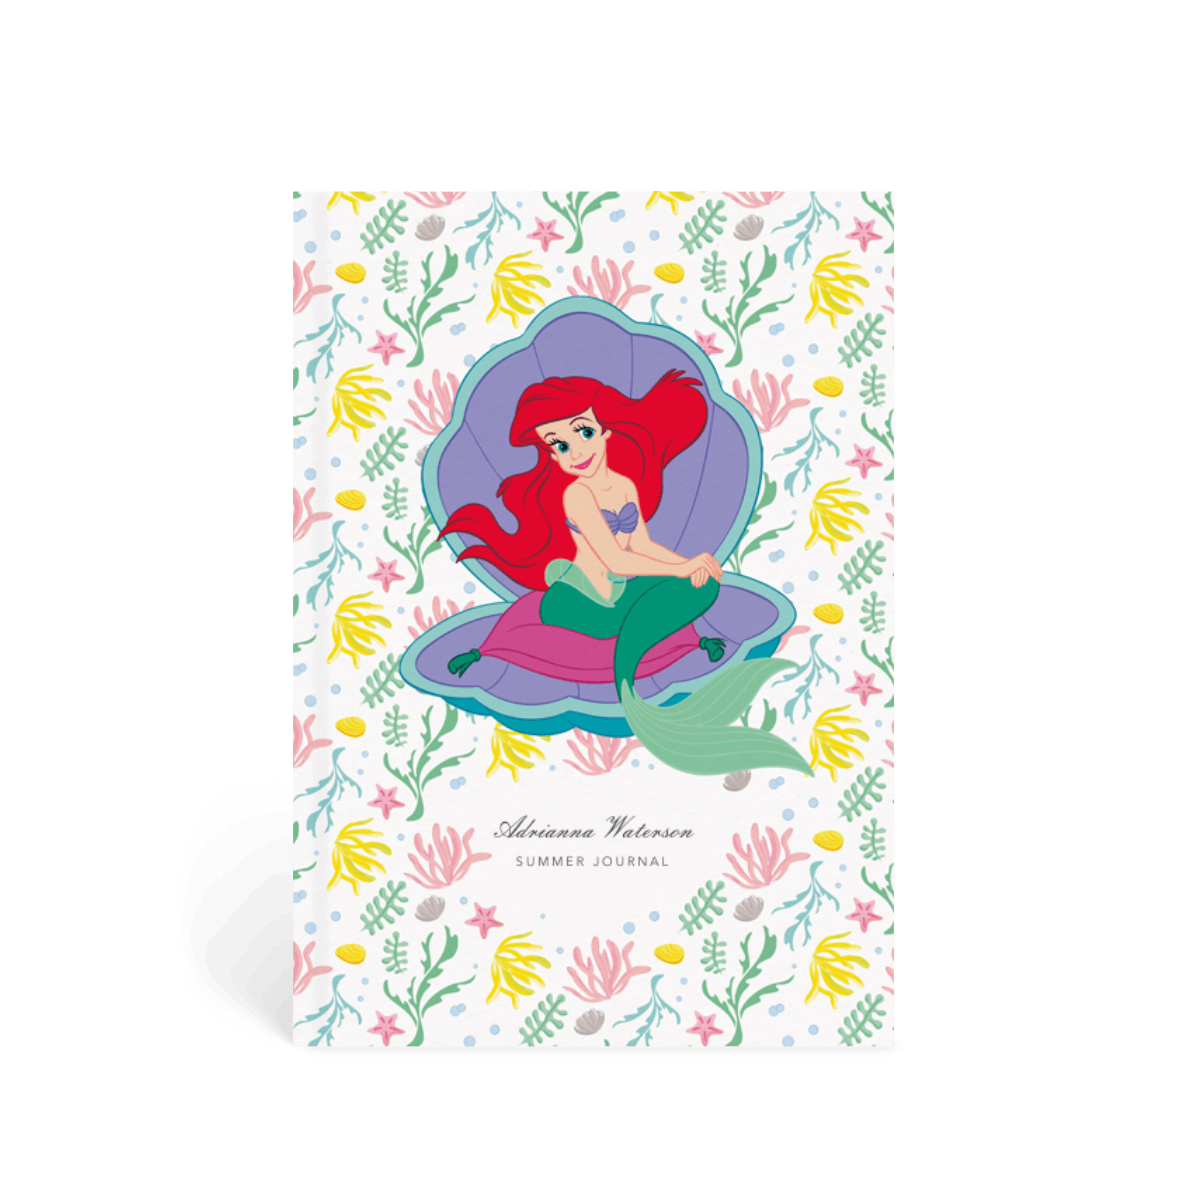 Https%3a%2f%2fwww.papier.com%2fproduct image%2f54112%2f25%2fthe little mermaid 13016 front 1542292239.png?ixlib=rb 1.1